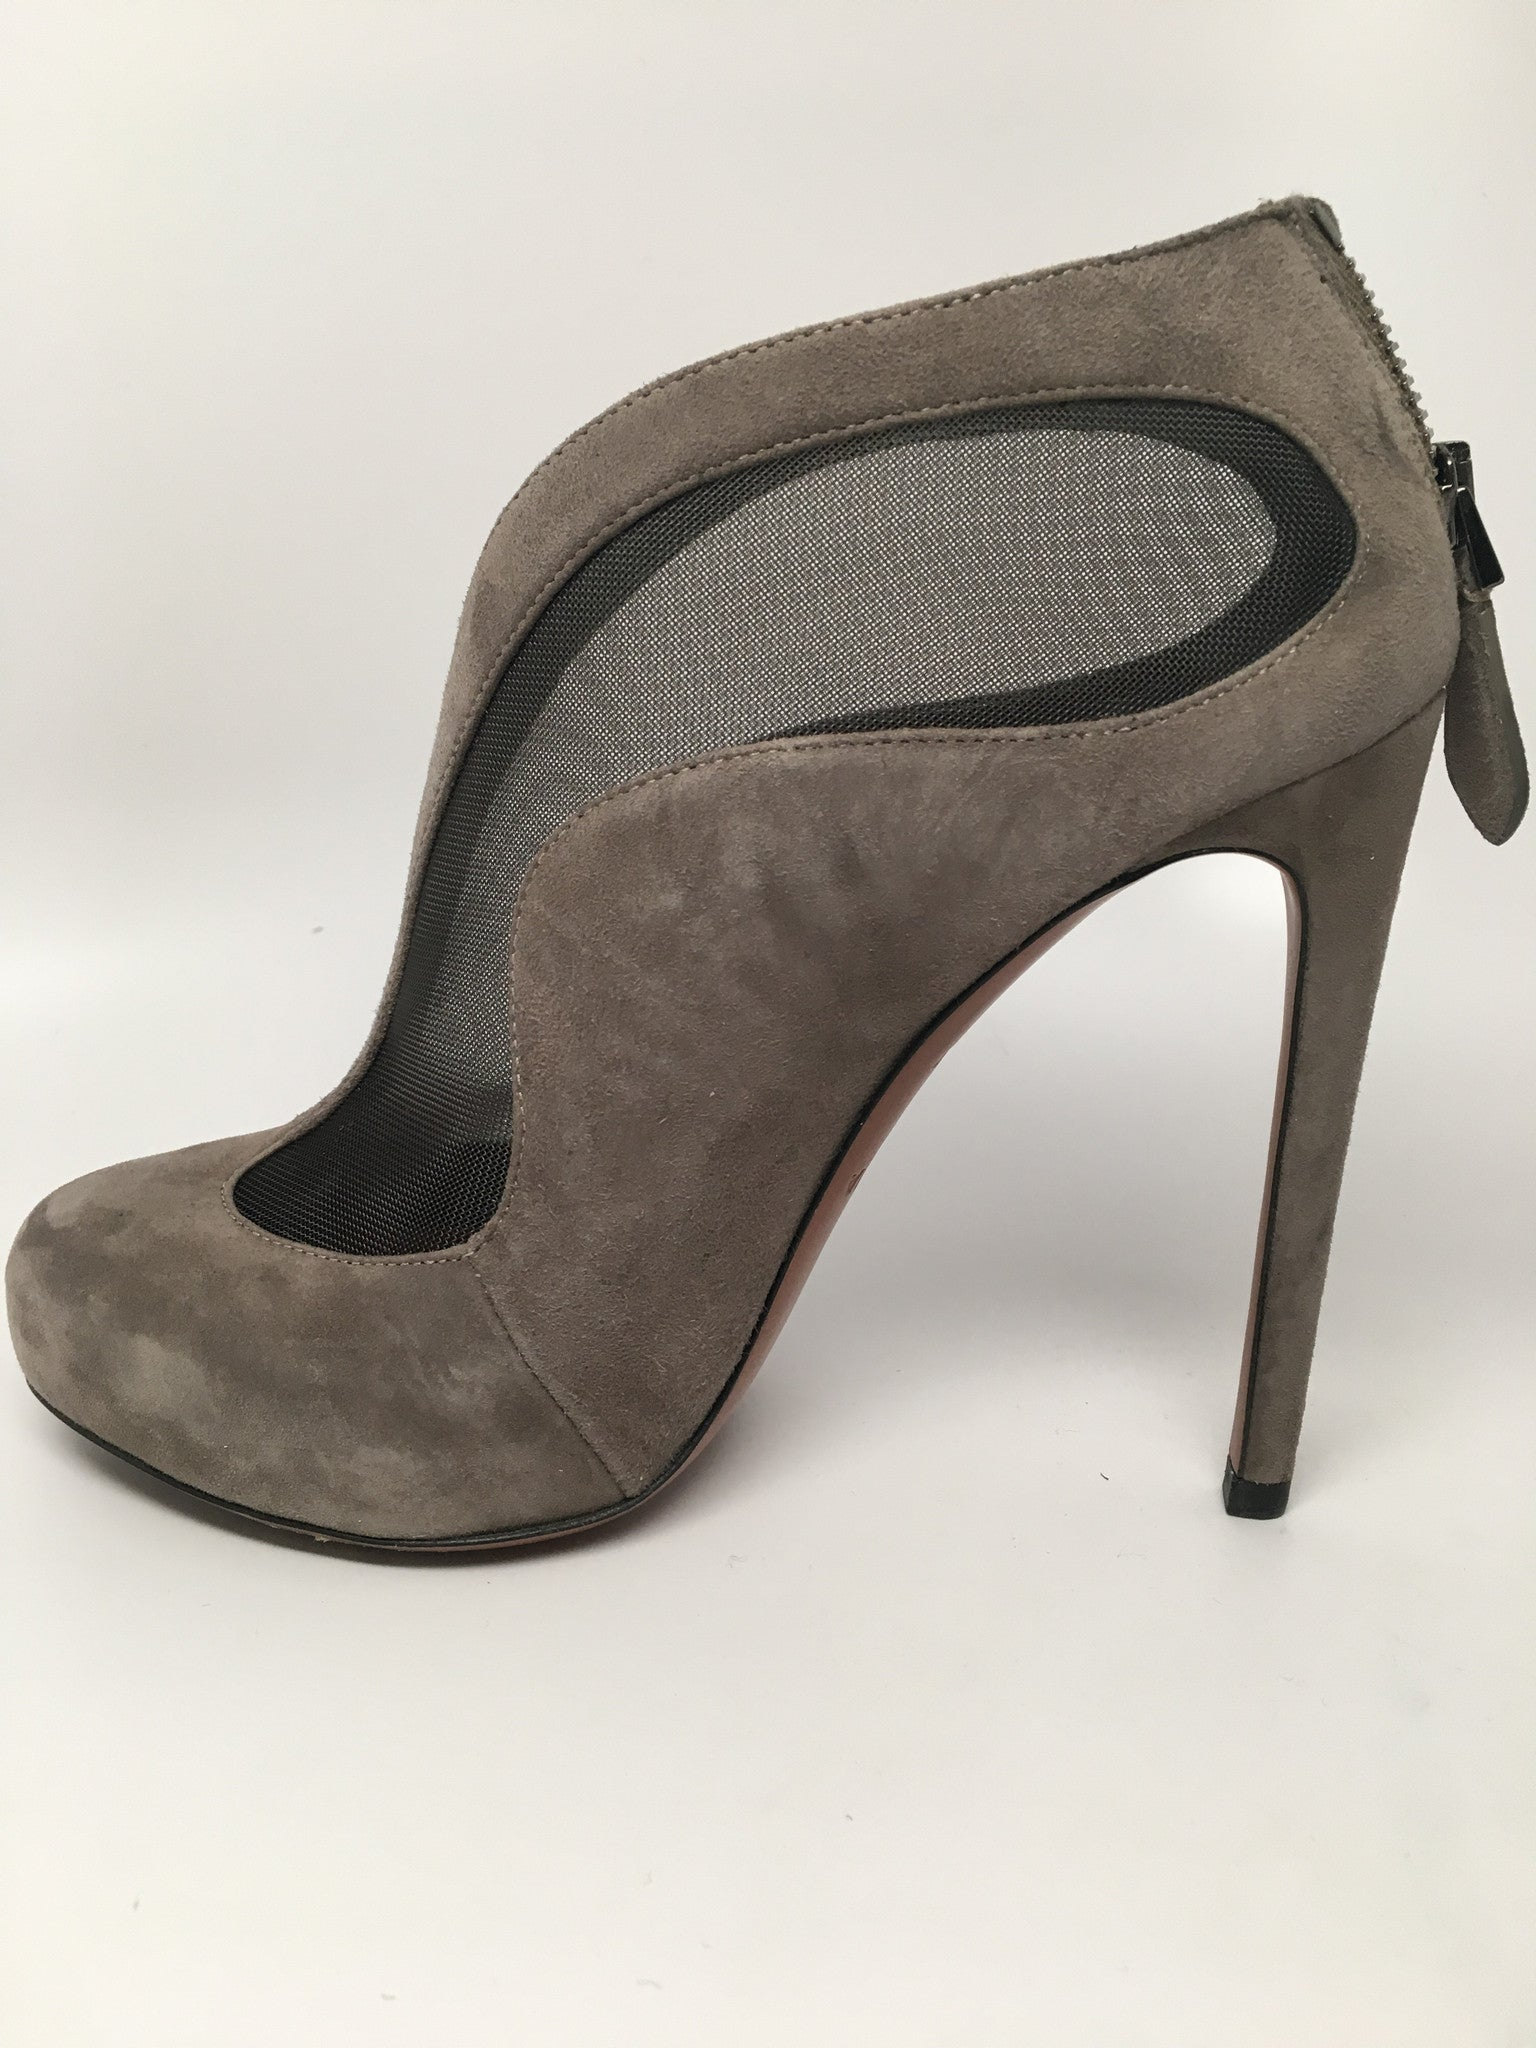 ALAIA PARIS CHAMOIS STILETTO ANKLE BOOTIES - SIZE 37